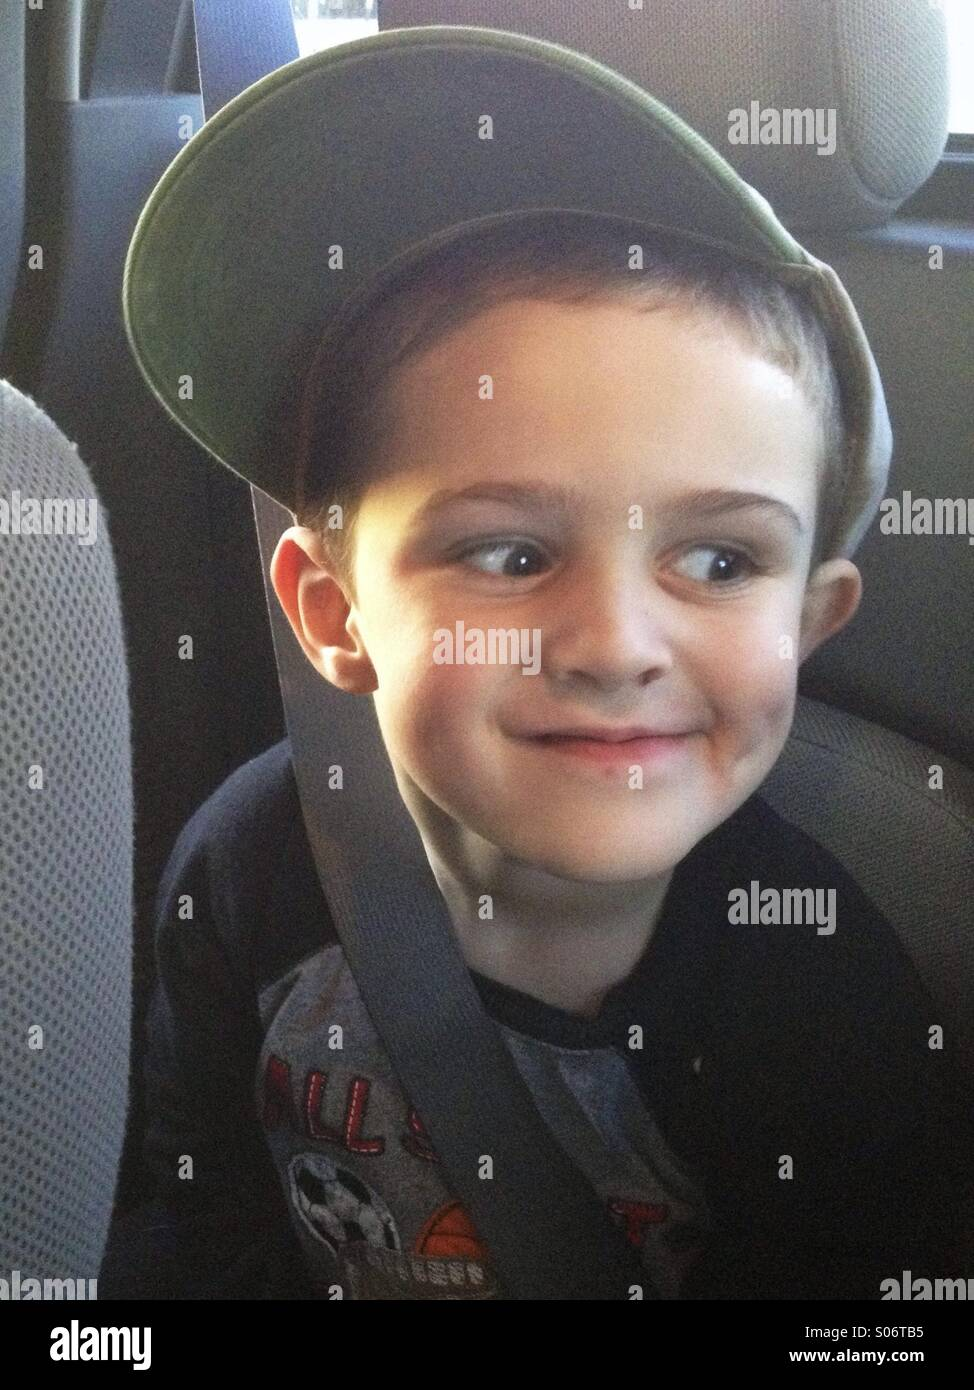 A three year old boy wearing a mans cap and looking mischievous. - Stock Image